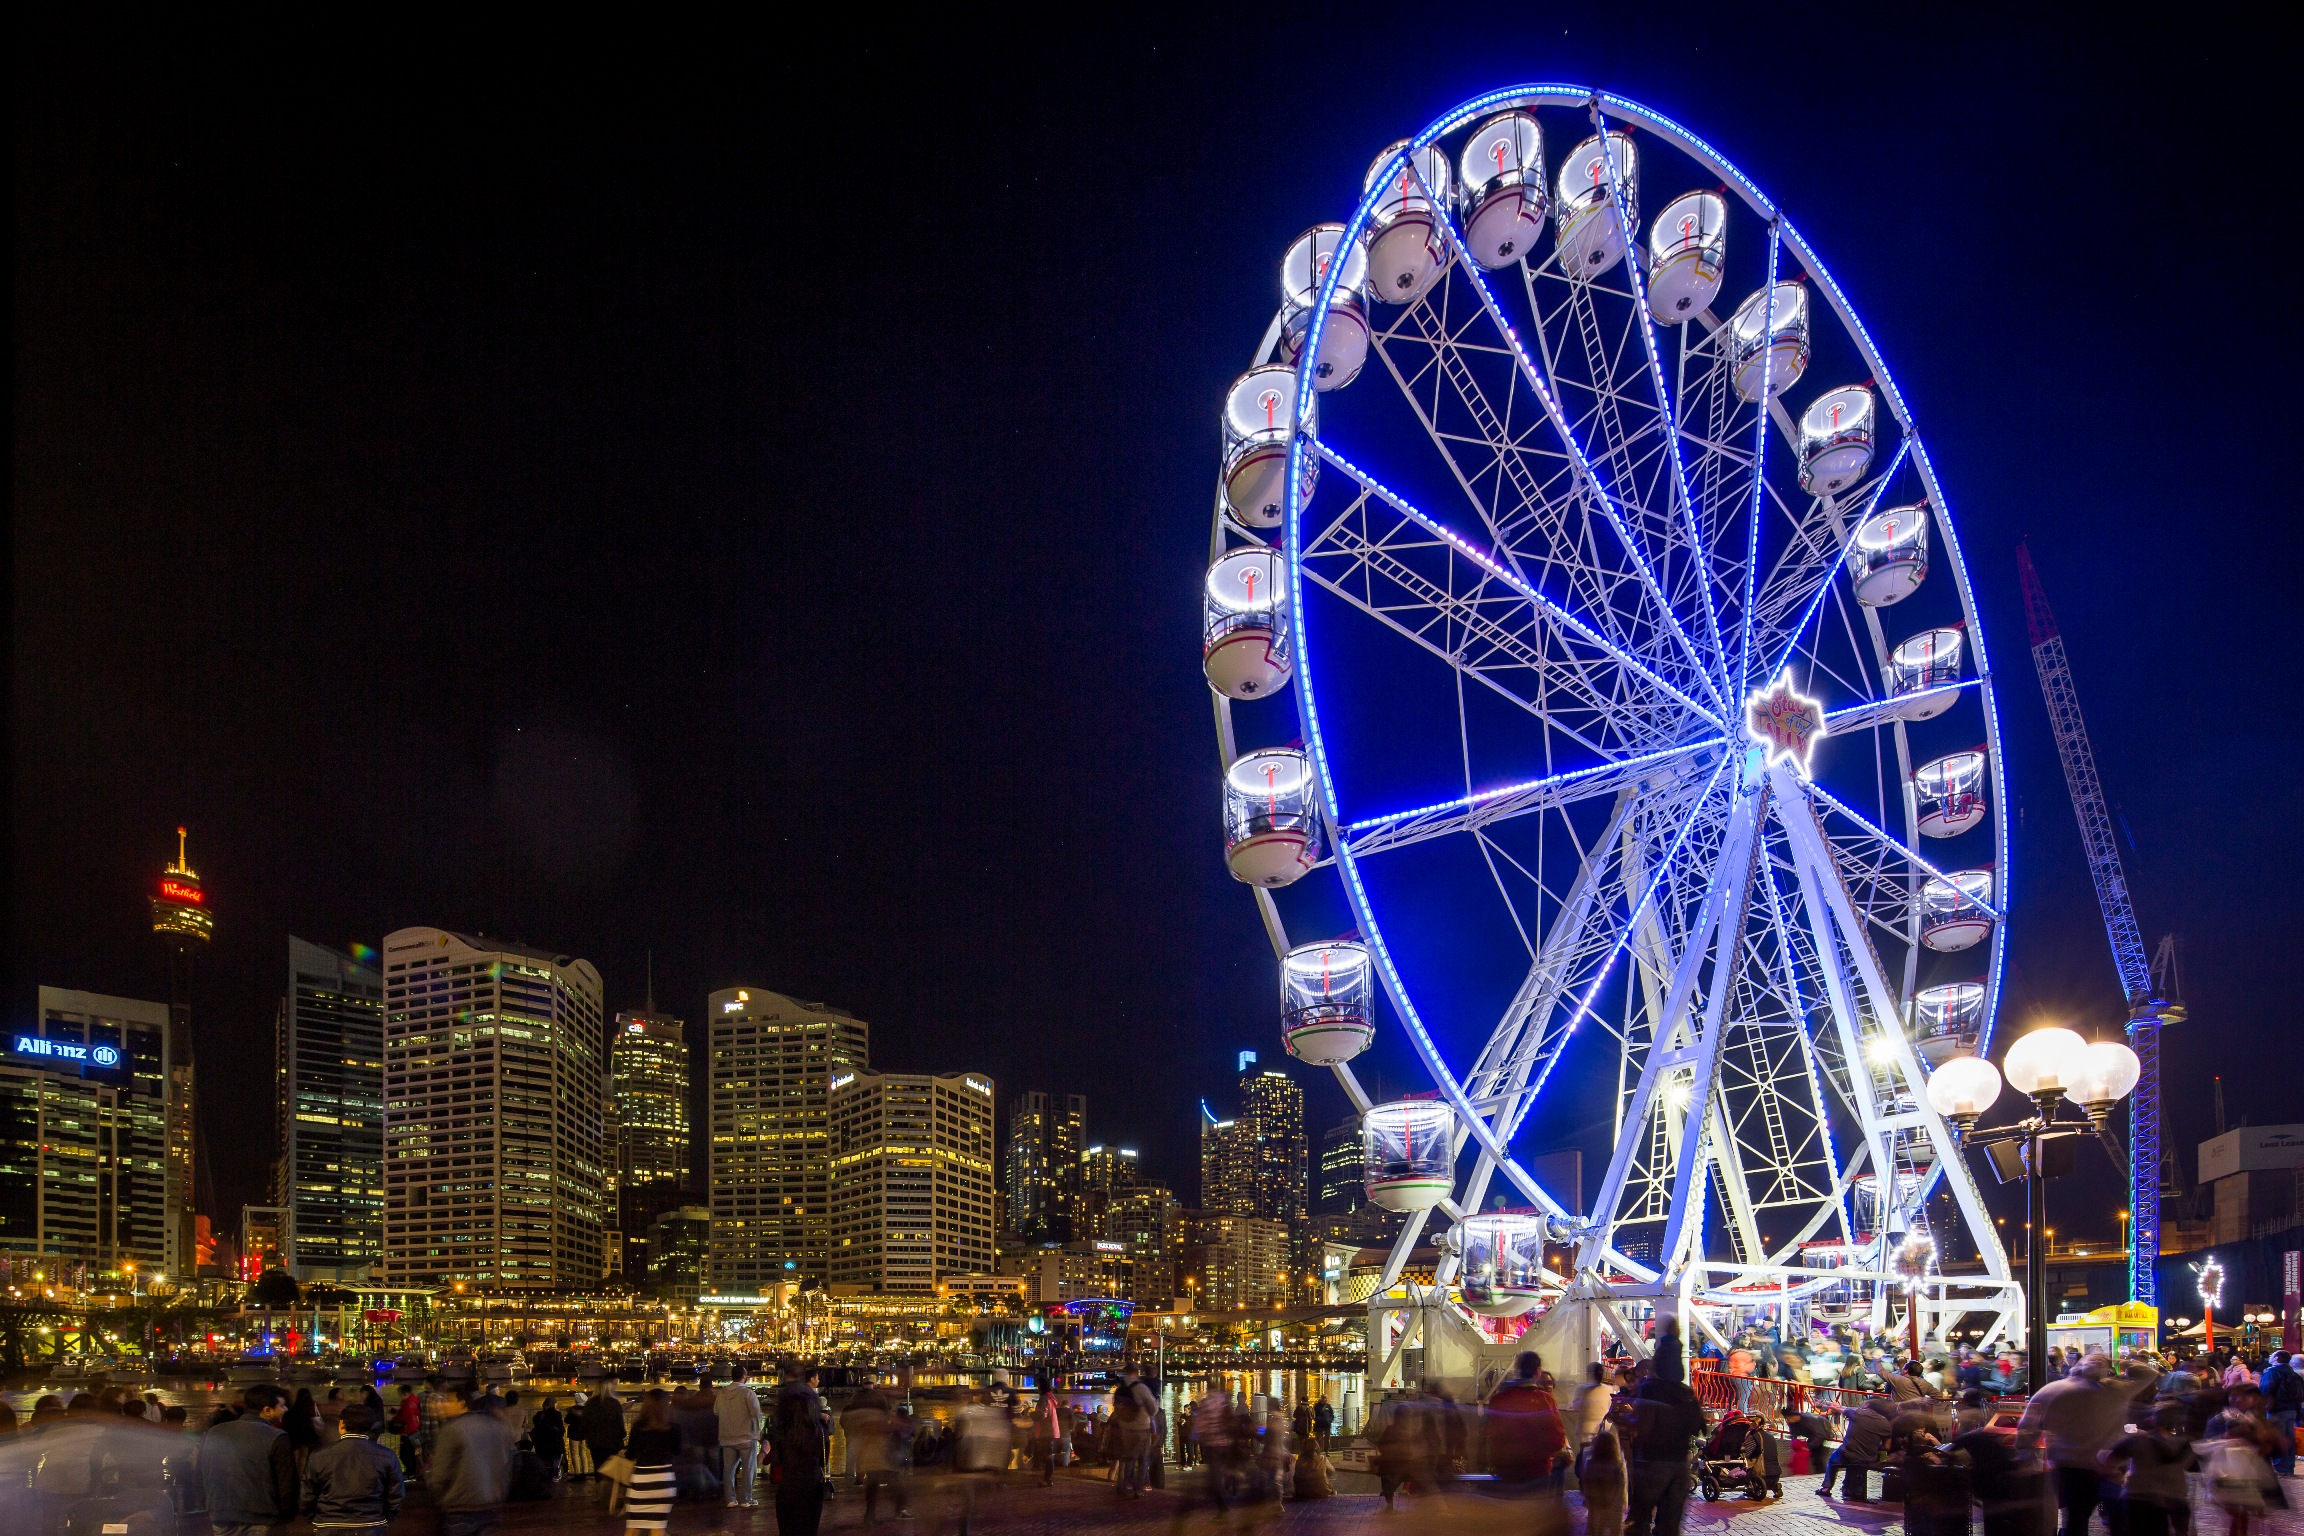 Darling Harbour Cool Yule Festival